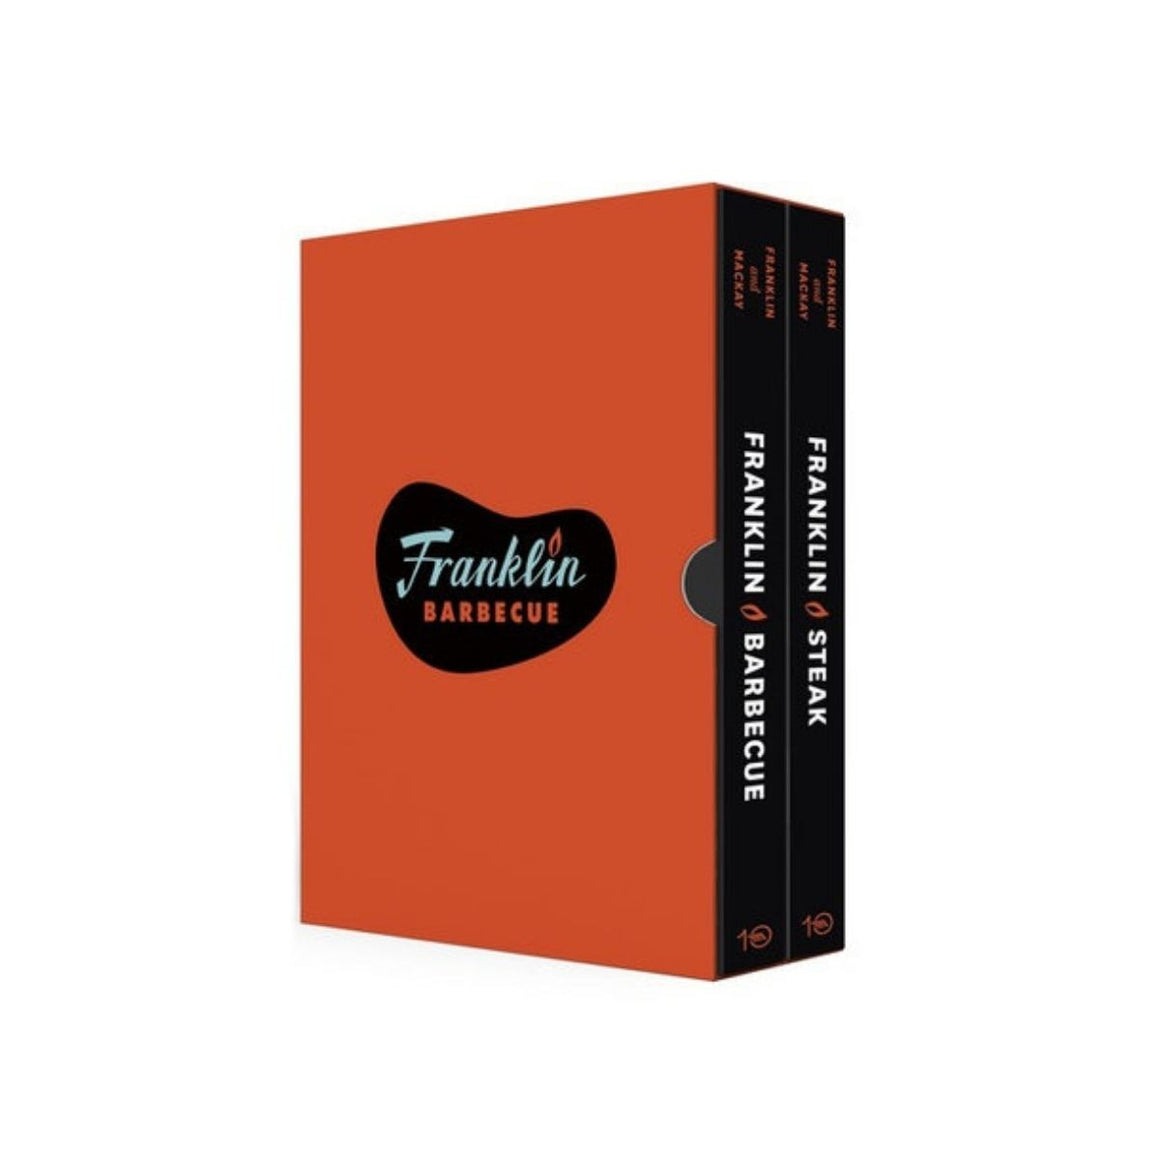 Image featuring a book cover in the center which is bright red with a black shape in the middle which says Franklin Barbecue and on the right hand side the spines of the book are facing out, both of them hold different titles such as Franklin Steak and Franklin Barbecue